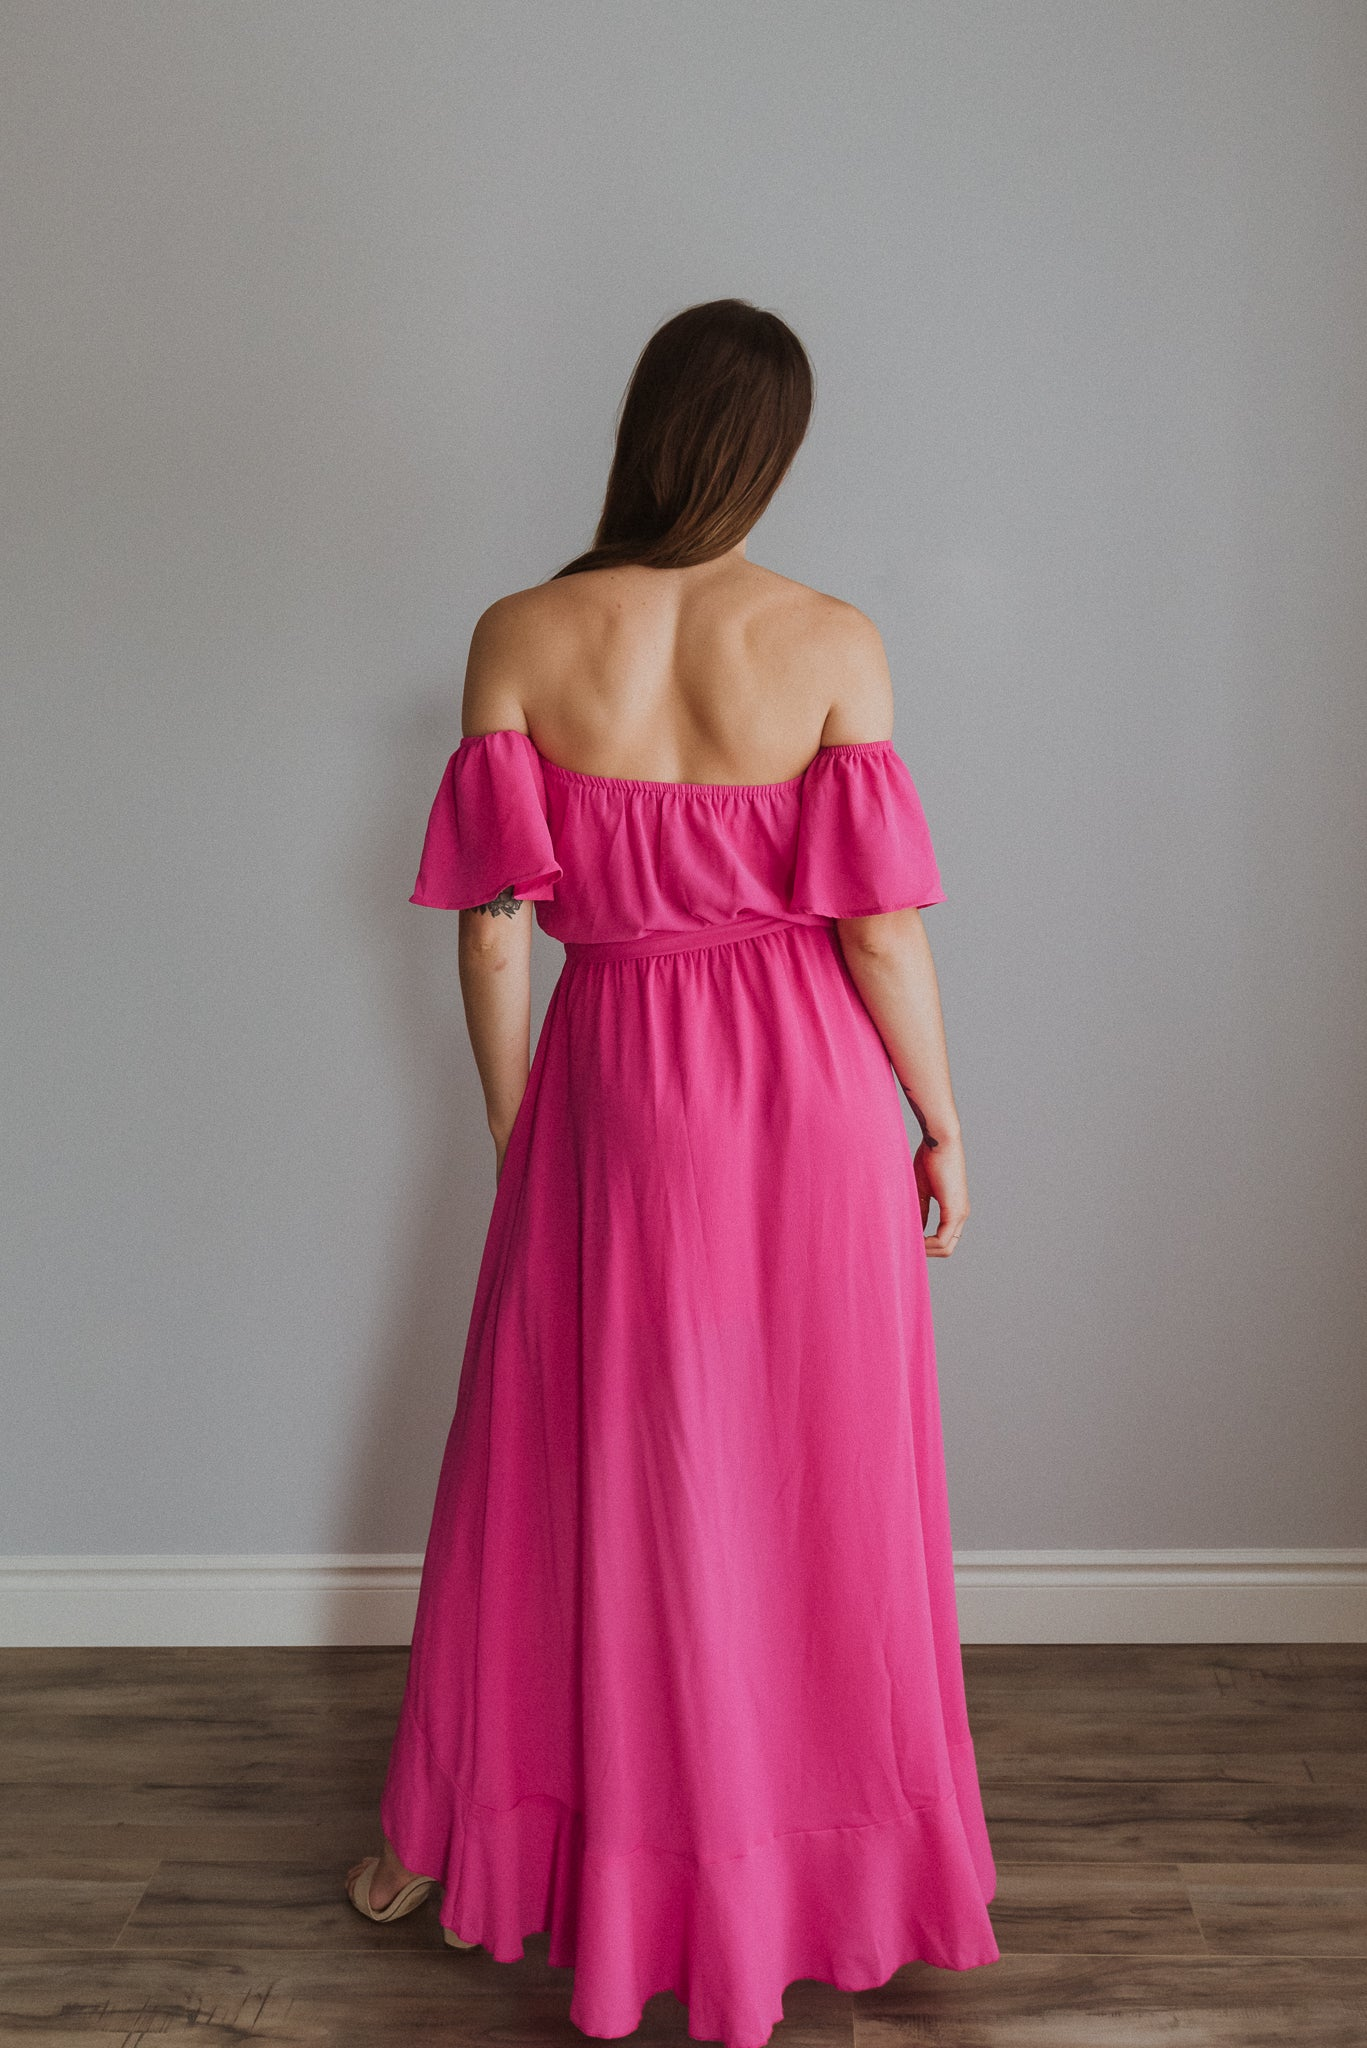 Let's Flamingle Off the Shoulder Ruffle Dress / FINAL SALE